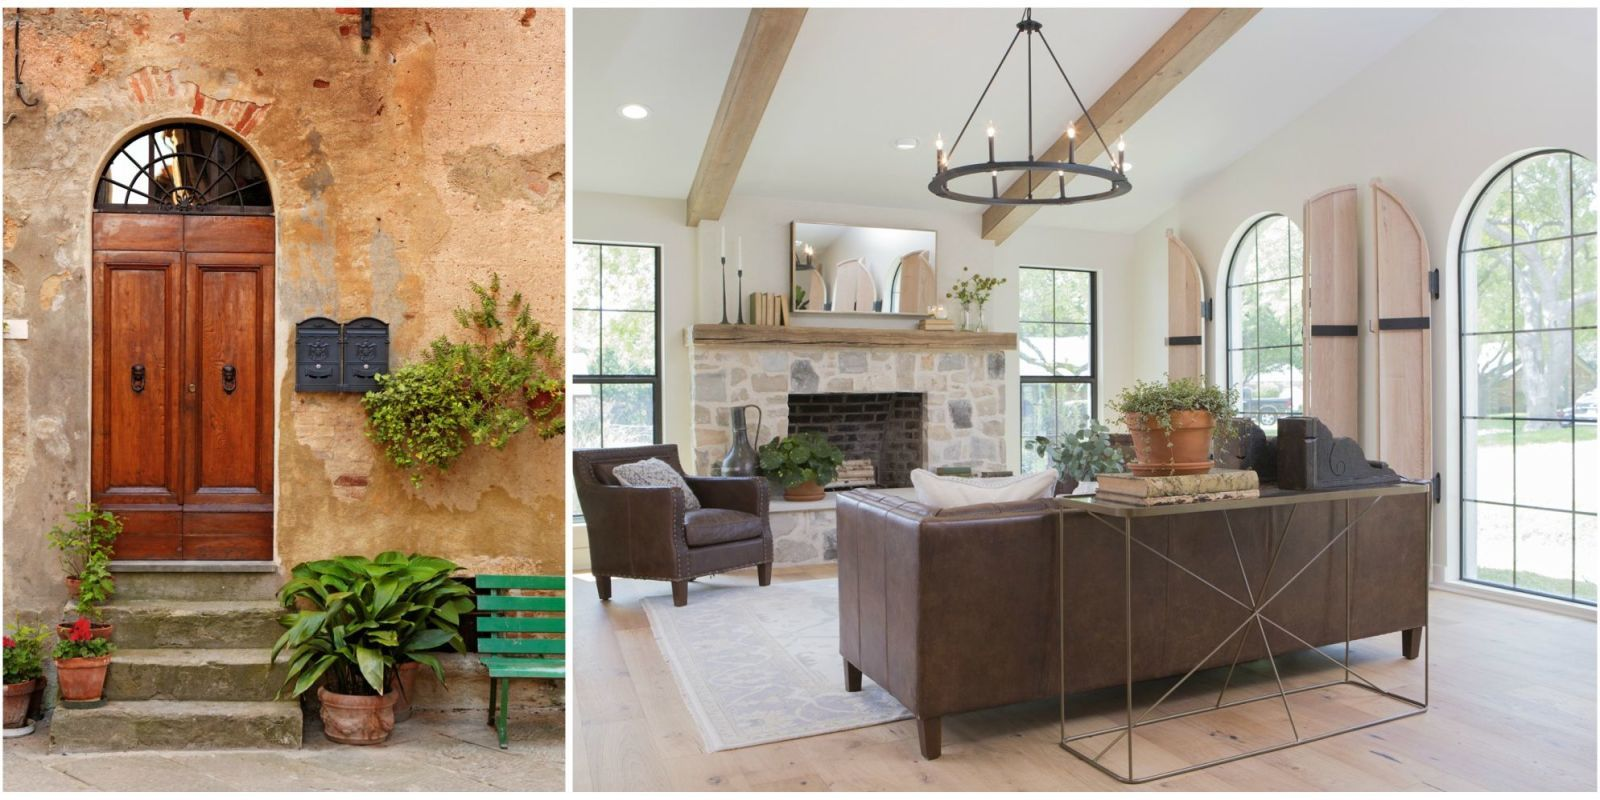 Modern Mediterranean Home Decor Trend Joanna Gaines Popularizes Moditerranean Style On Fixer Upper